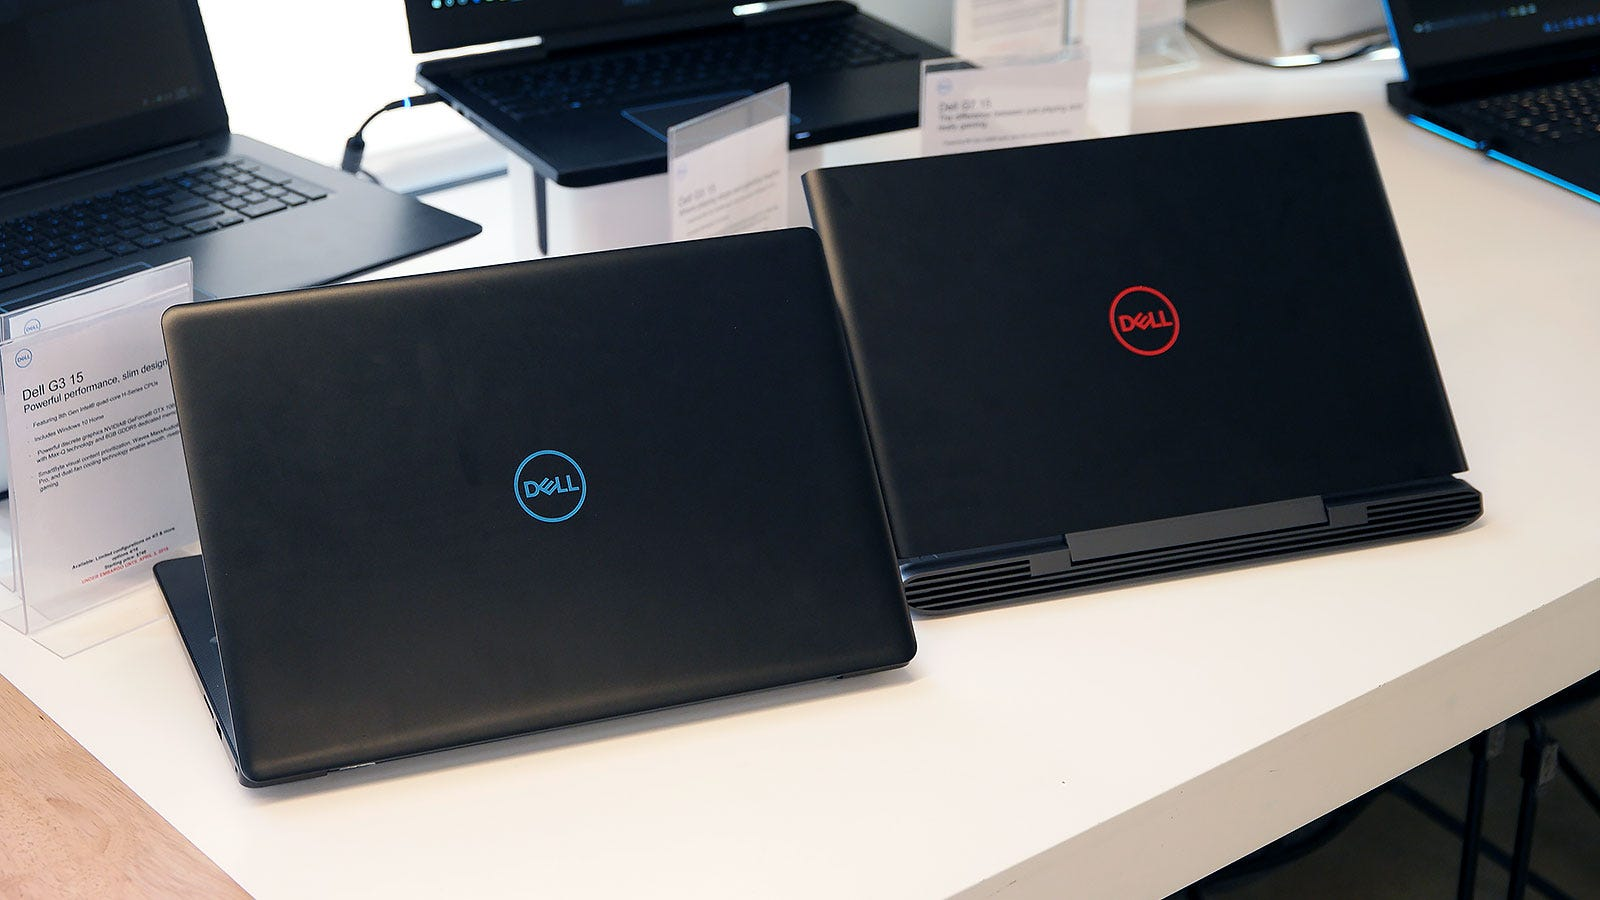 Dell didn't have any of the white G-Series laptops to show at its event. Sorry.